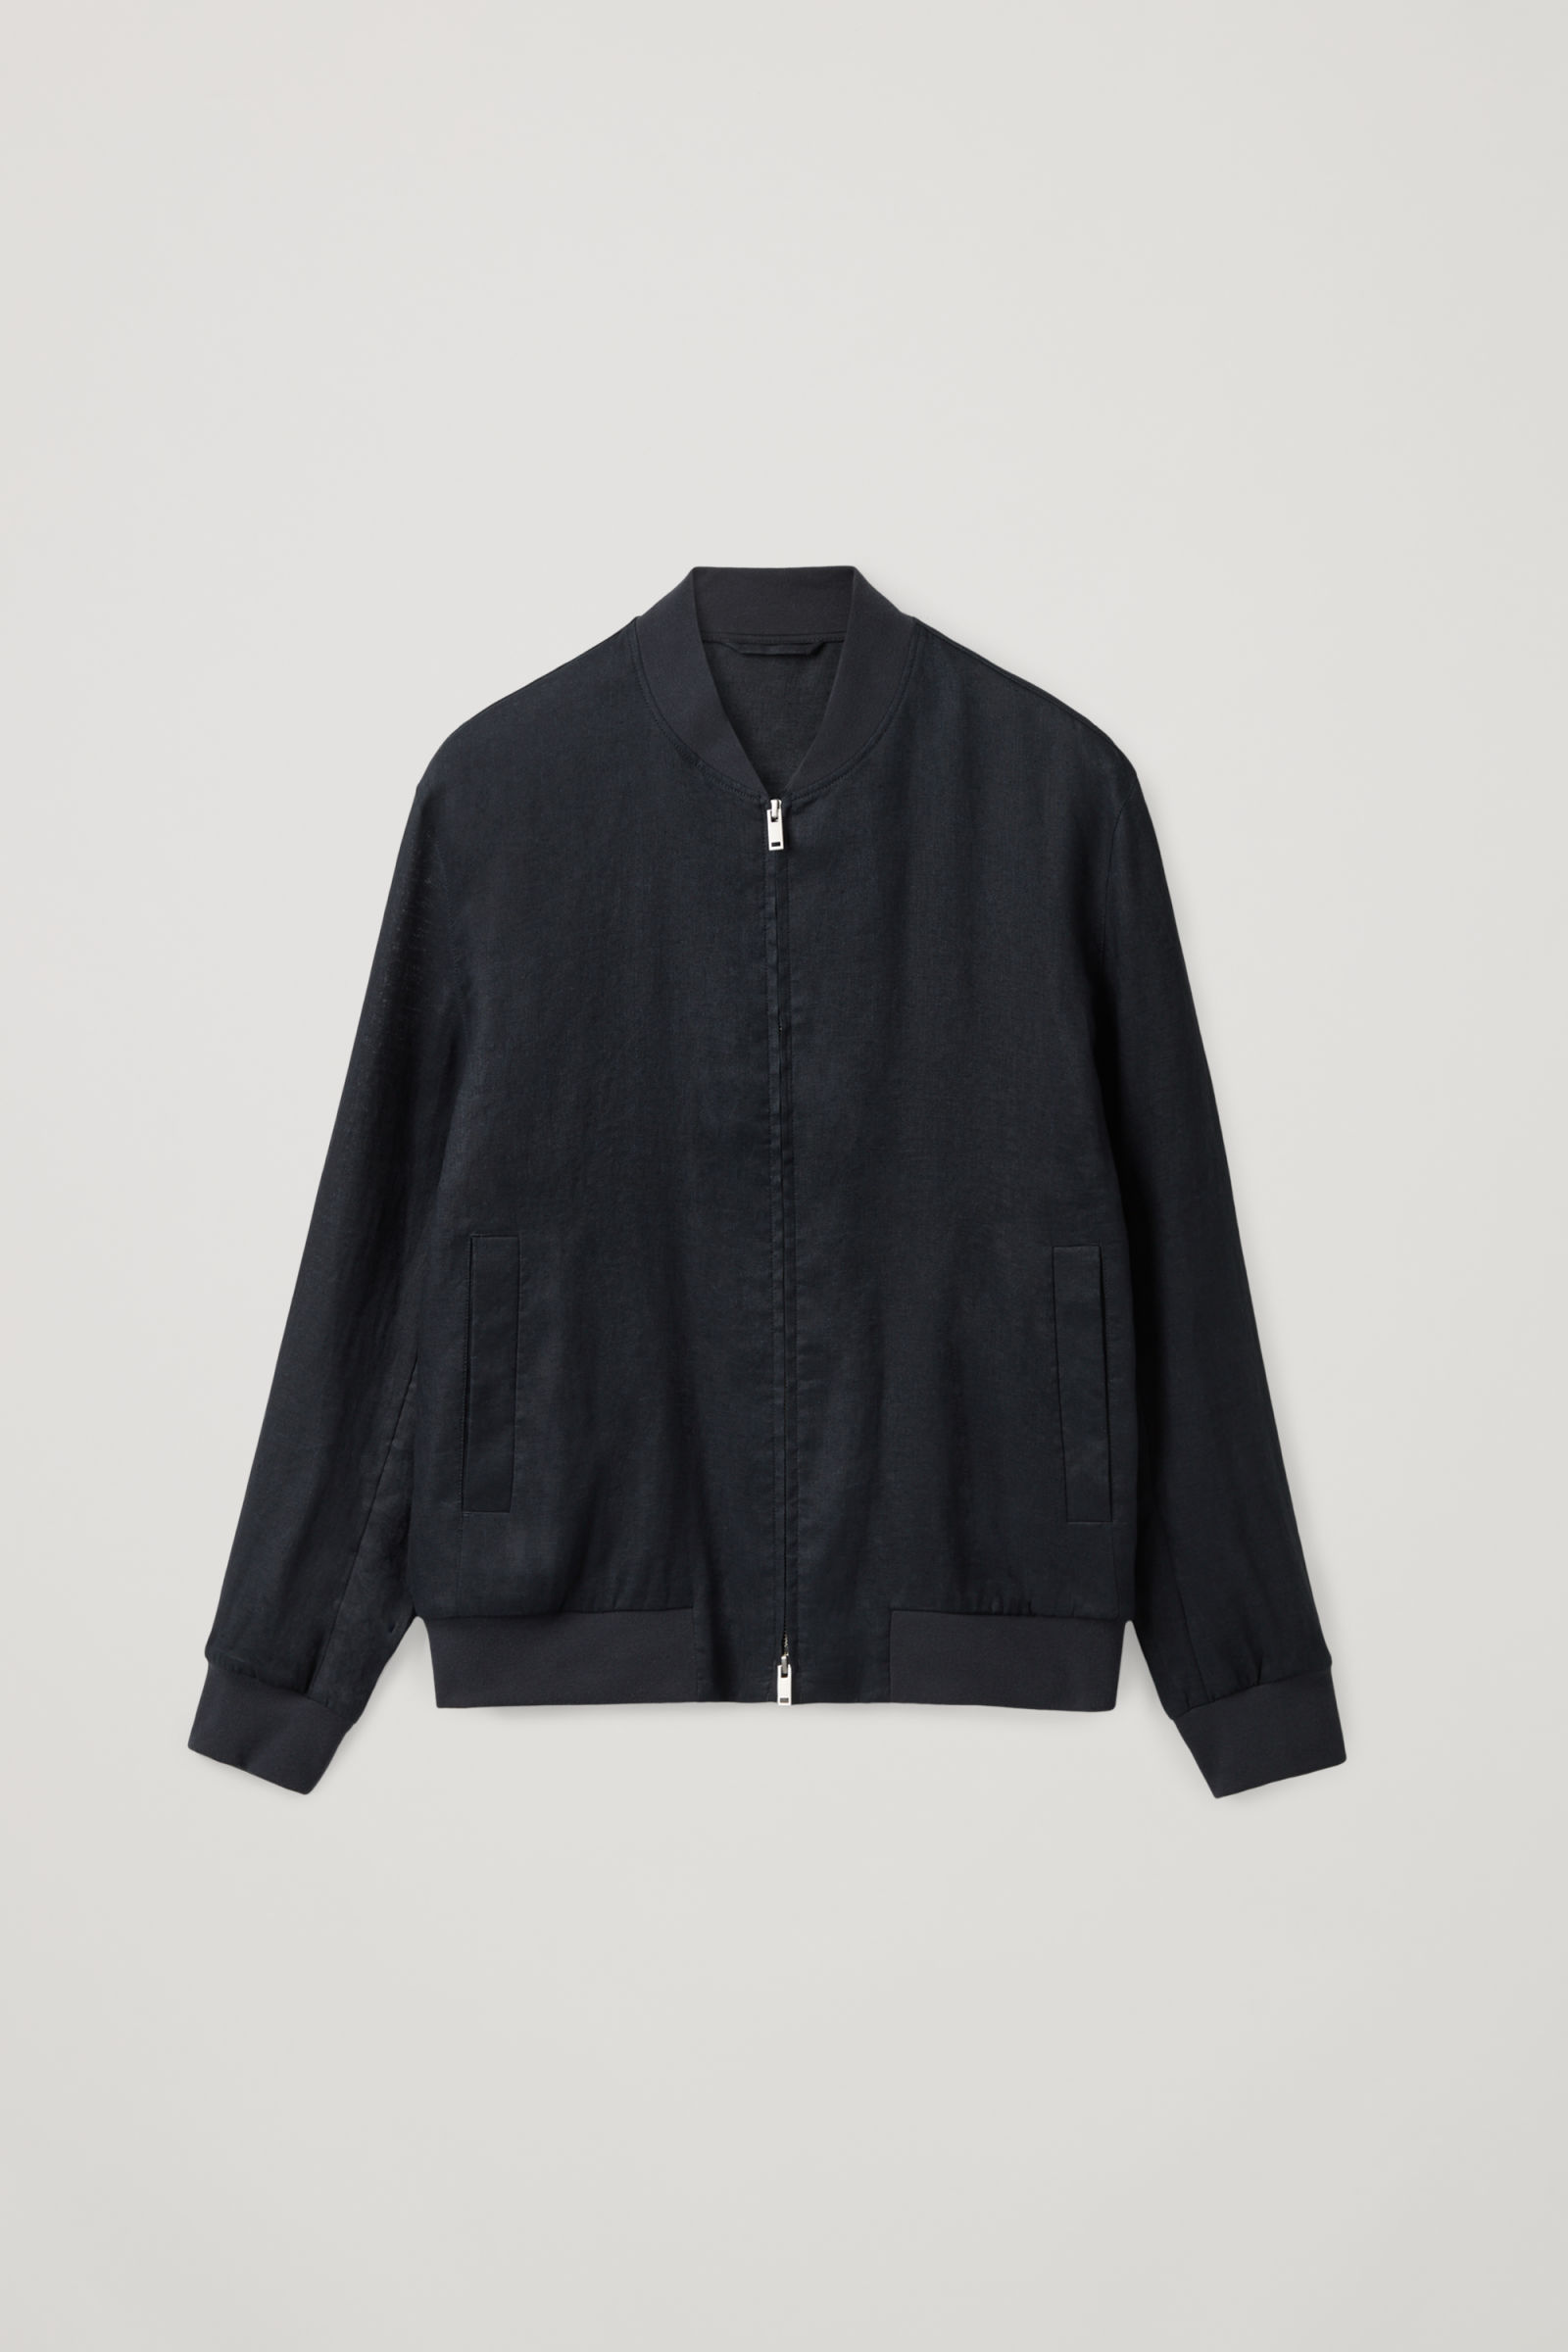 COS HEMP BOMBER JACKET,Dark navy